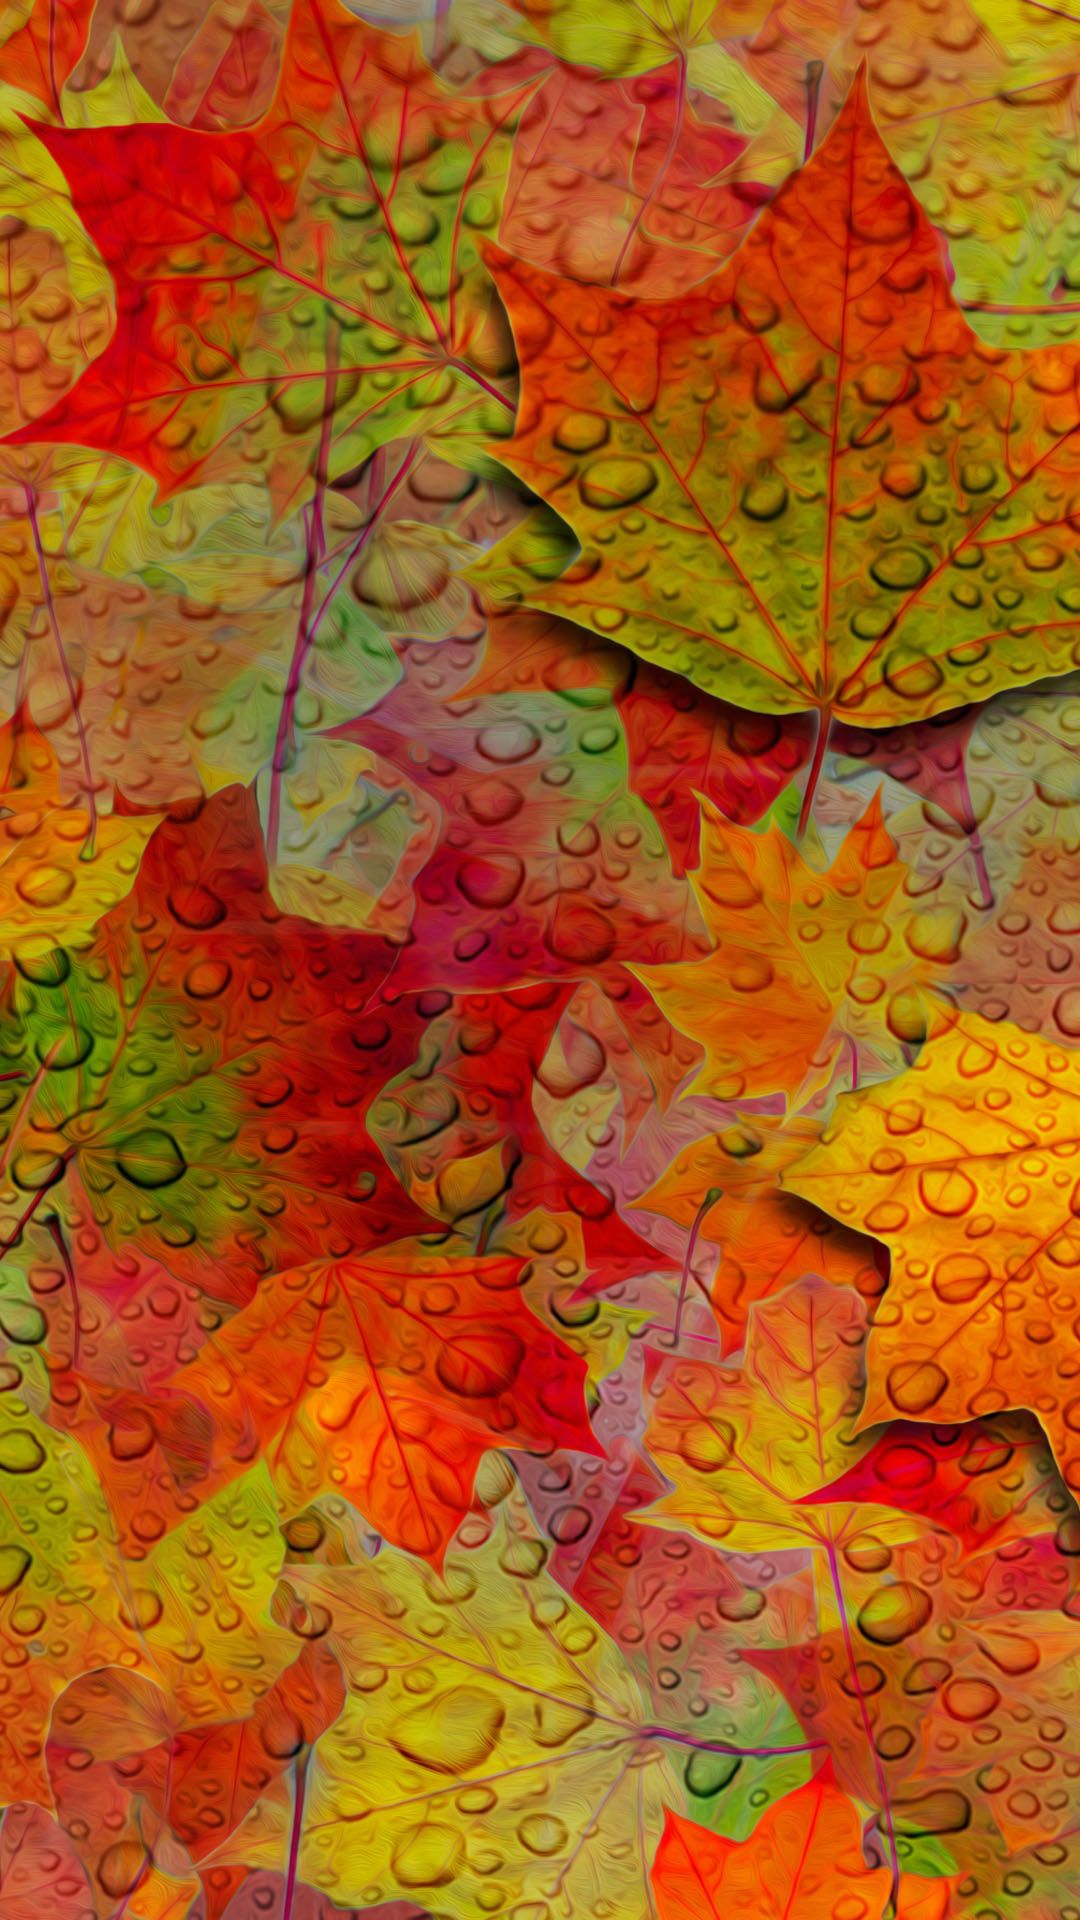 fall leaves iphone wallpaper, autumn wallpaper for iphone